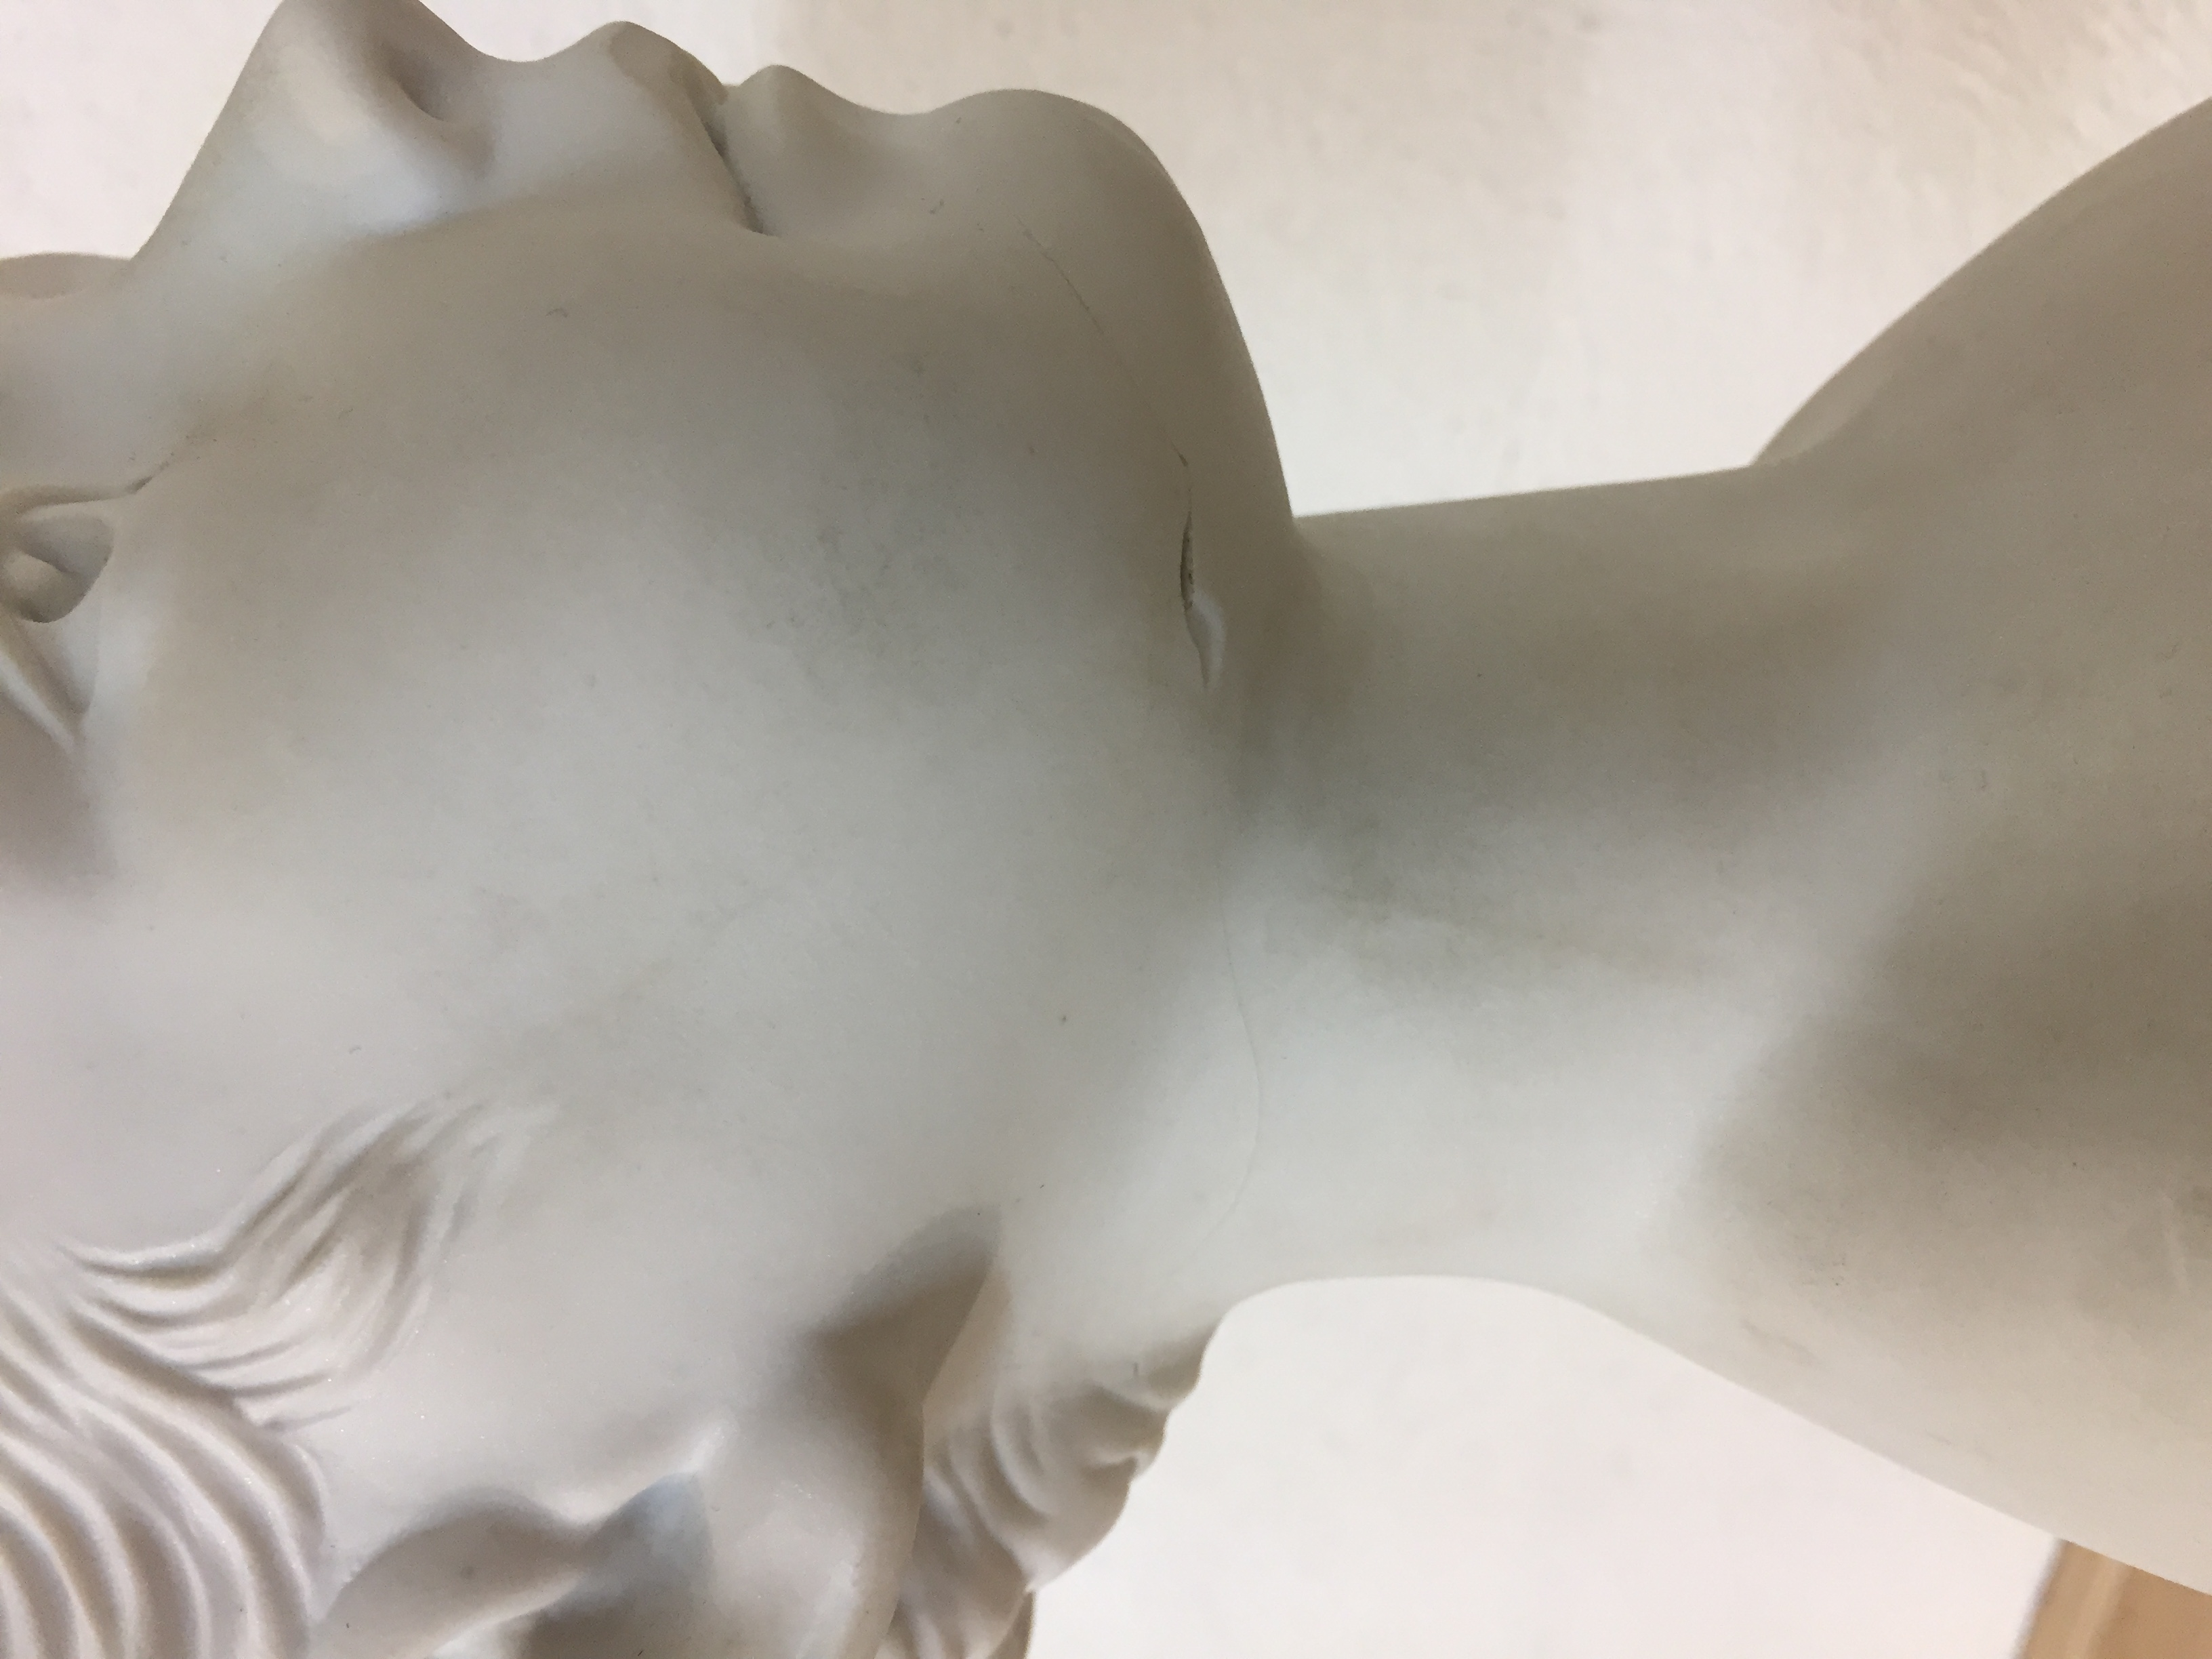 Bust of Moliere by Houdon 4.9 in White Souvenirs of France